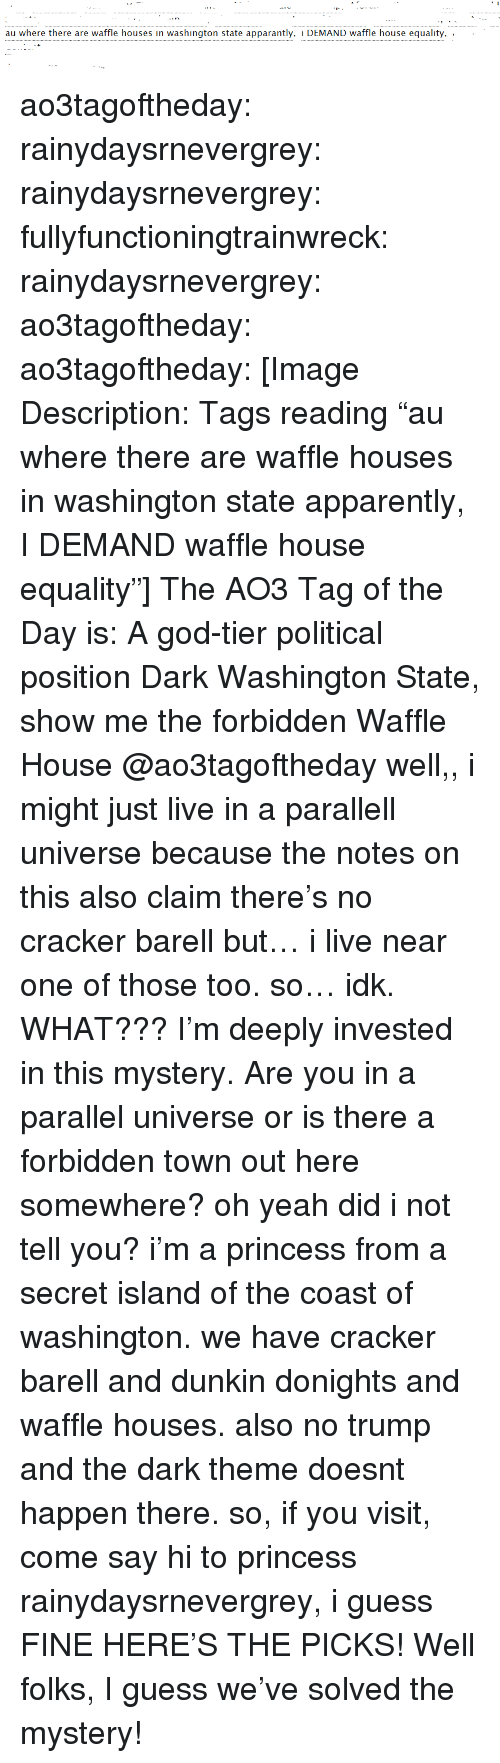 """Apparently, Bailey Jay, and God: au where there are waffle houses in washington state apparantly, i DEMAND waffle house equality, .  . ao3tagoftheday:  rainydaysrnevergrey:  rainydaysrnevergrey:  fullyfunctioningtrainwreck:  rainydaysrnevergrey:   ao3tagoftheday:  ao3tagoftheday:   [Image Description: Tags reading """"au where there are waffle houses in washington state apparently, I DEMAND waffle house equality""""]  The AO3 Tag of the Day is: A god-tier political position    Dark Washington State, show me the forbidden Waffle House  @ao3tagoftheday well,, i might just live in a parallell universe because the notes on this also claim there's no cracker barell but… i live near one of those too. so… idk.   WHAT??? I'm deeply invested in this mystery. Are you in a parallel universe or is there a forbidden town out here somewhere?  oh yeah did i not tell you? i'm a princess from a secret island of the coast of washington. we have cracker barell and dunkin donights and waffle houses. also no trump and the dark theme doesnt happen there. so, if you visit, come say hi to princess rainydaysrnevergrey, i guess  FINE HERE'S THE PICKS!  Well folks, I guess we've solved the mystery!"""